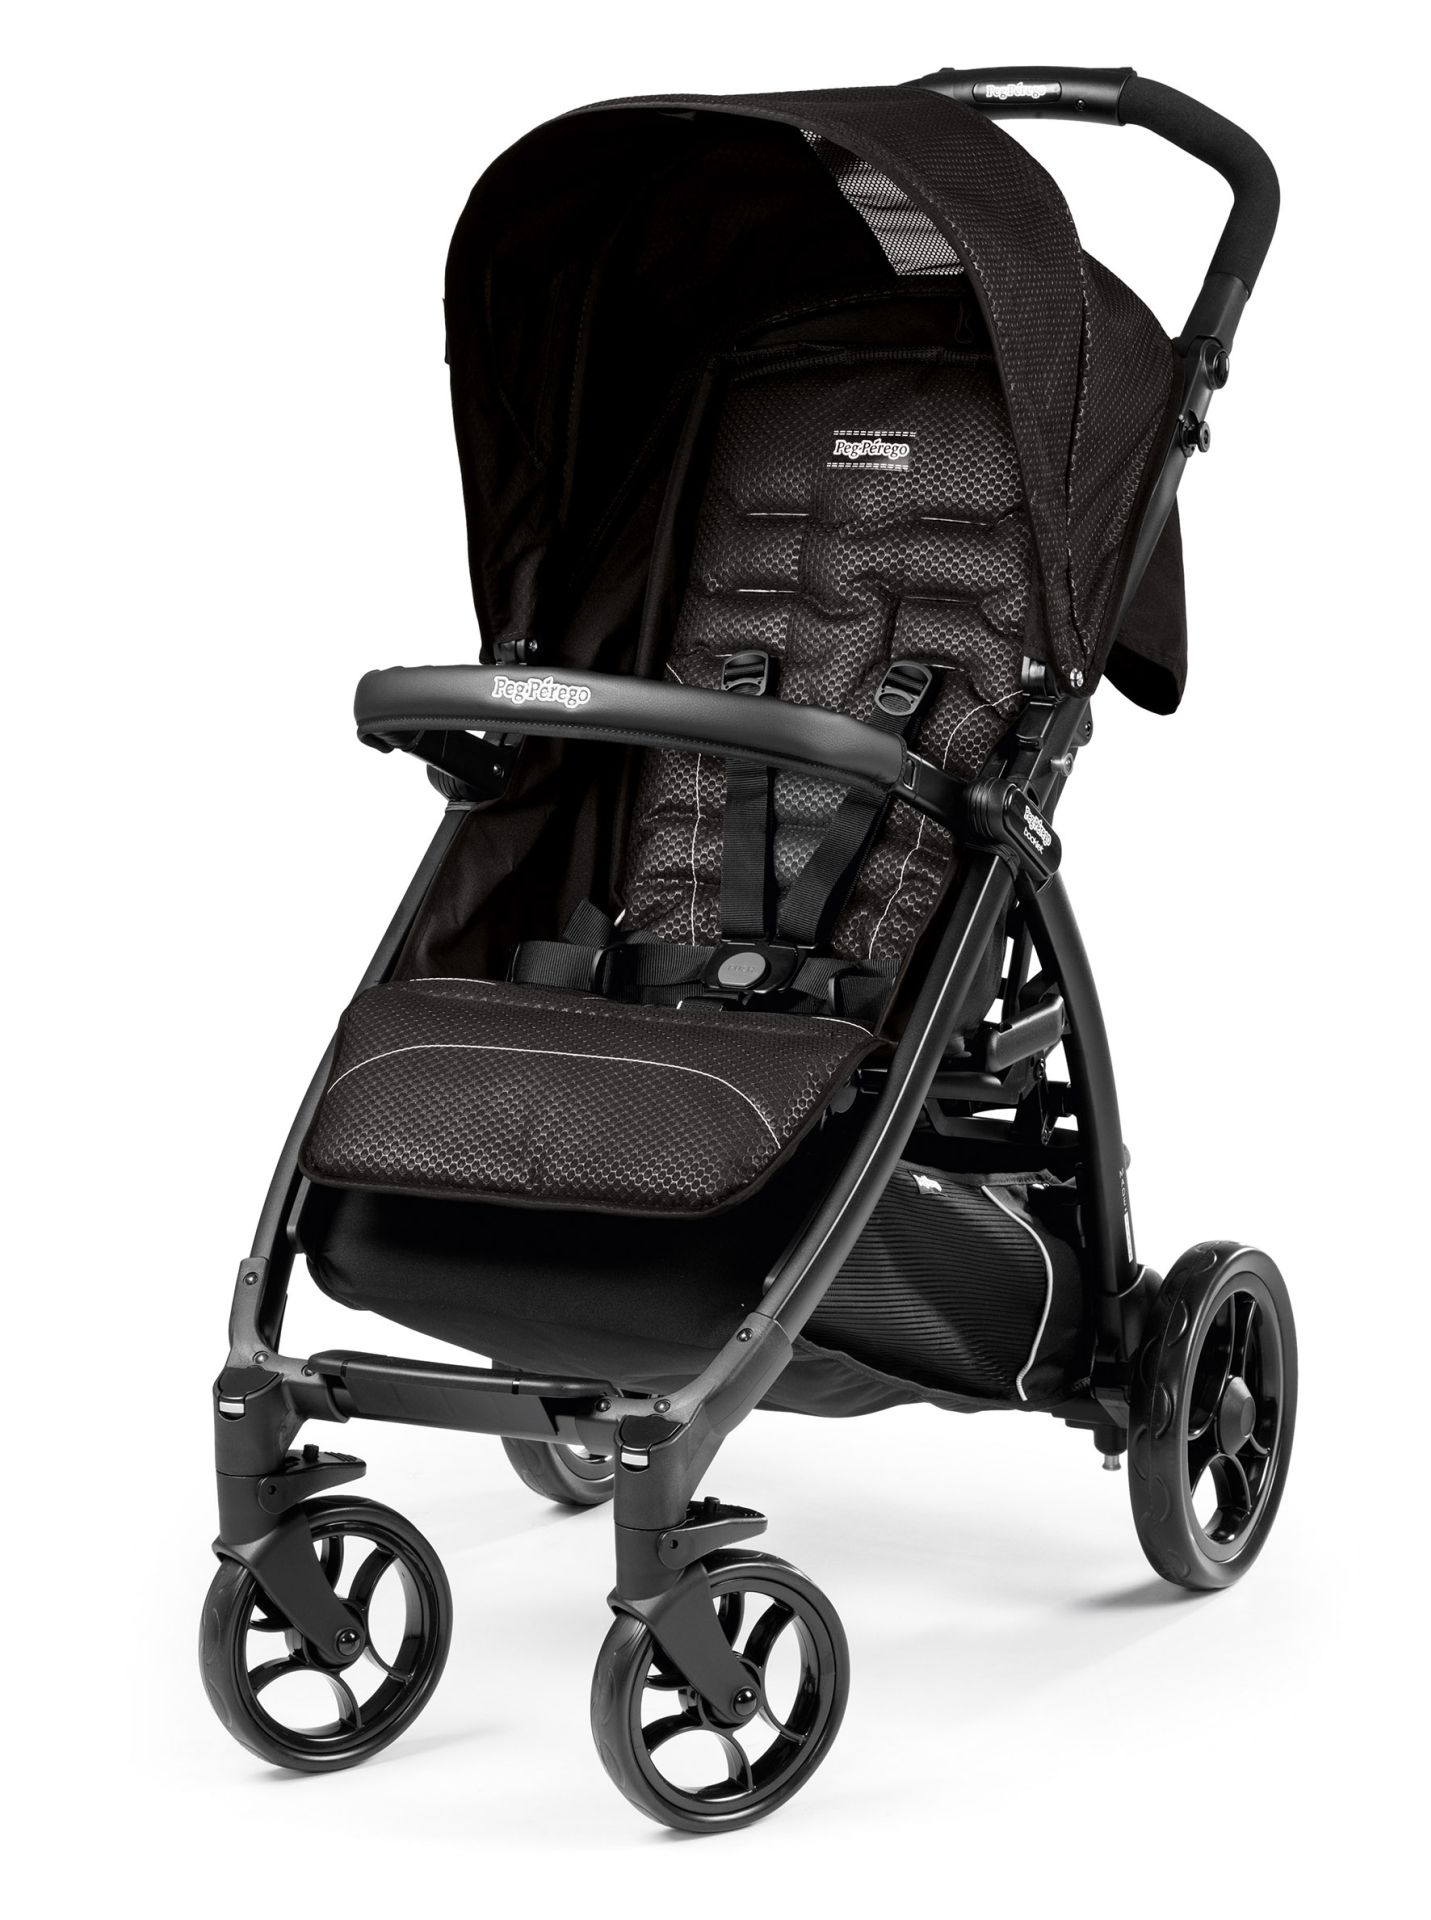 poussette buggy booklet lite par peg perego acheter sur. Black Bedroom Furniture Sets. Home Design Ideas